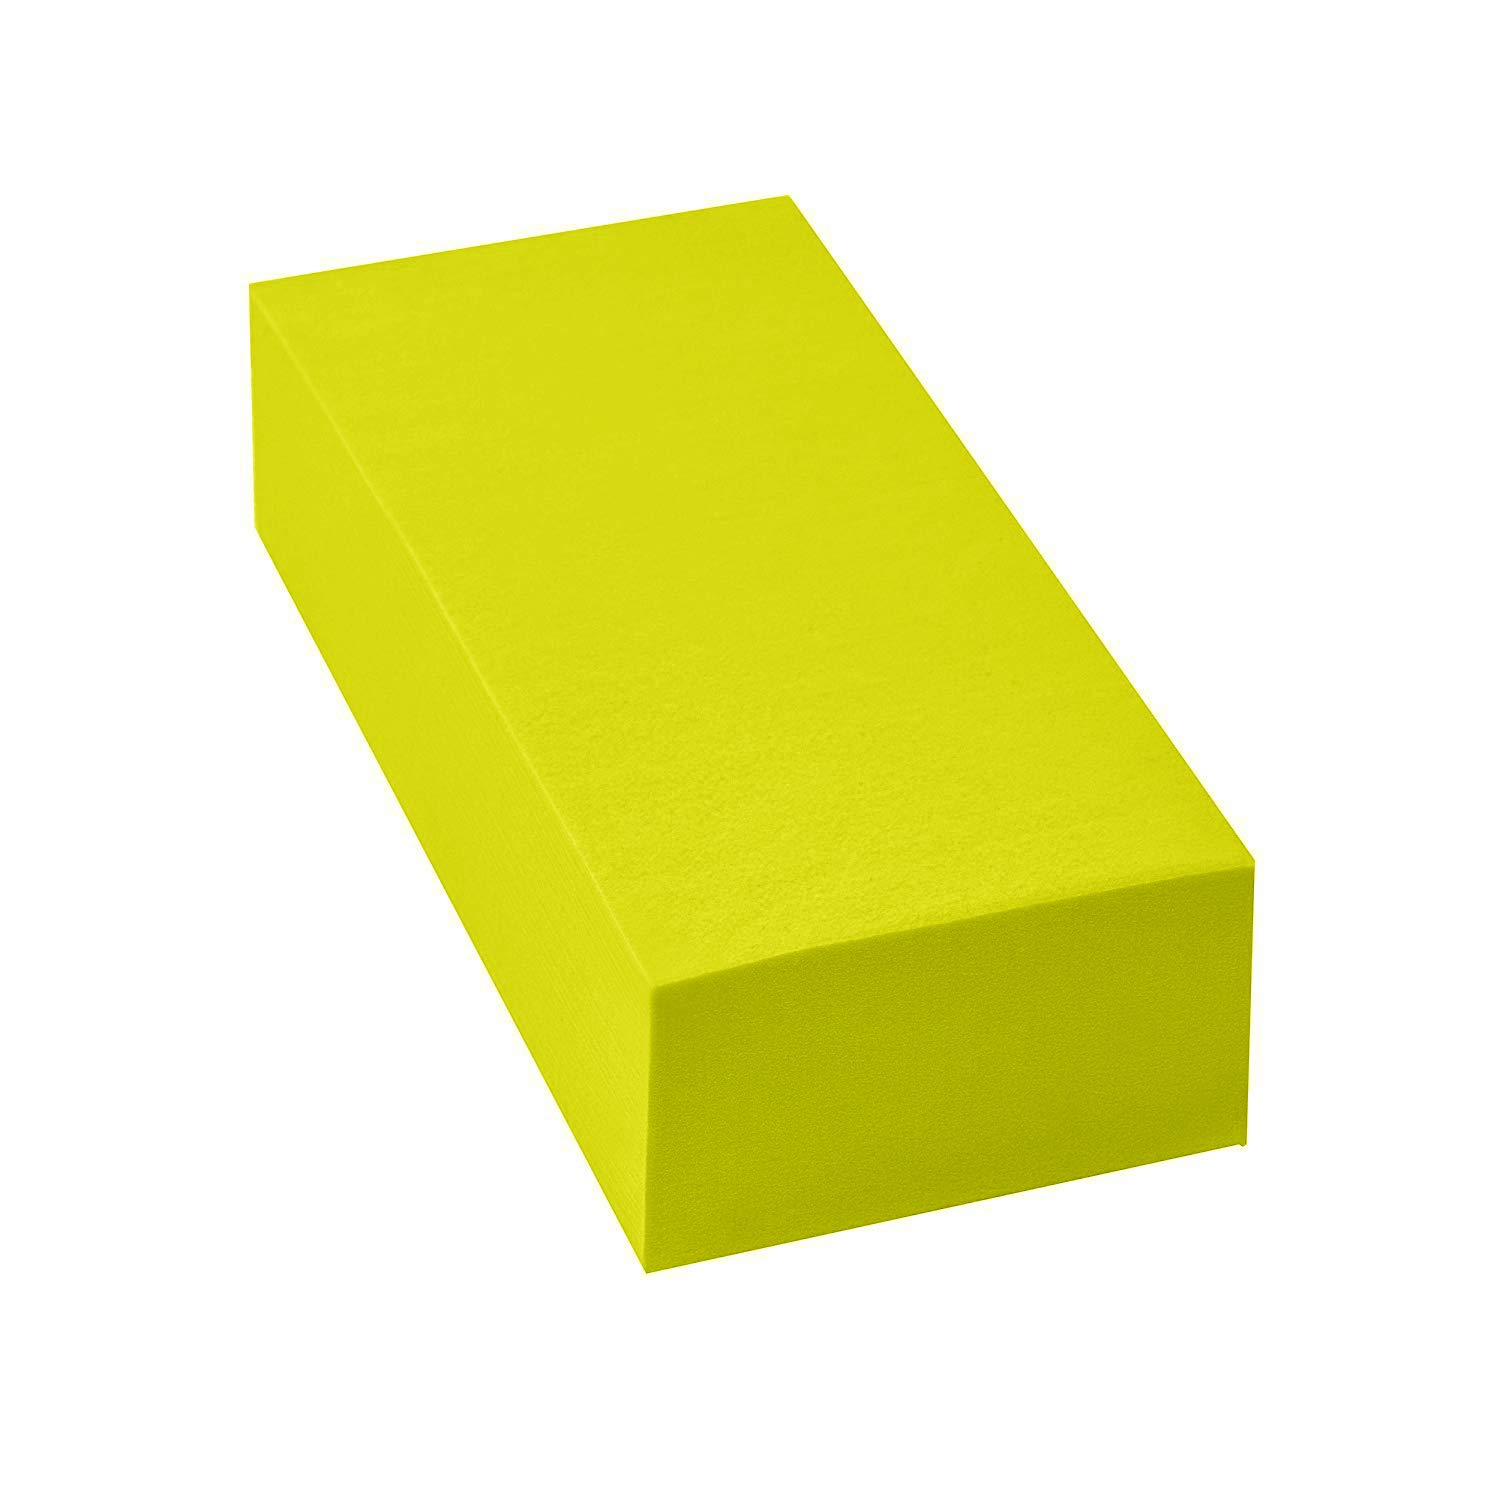 Glass Dirt and Absorb Ponding Kitchen Dust Yellow SMOMSPLUS Super Absorbent Sponge High-Density Cleaning Sponge for Car Wash